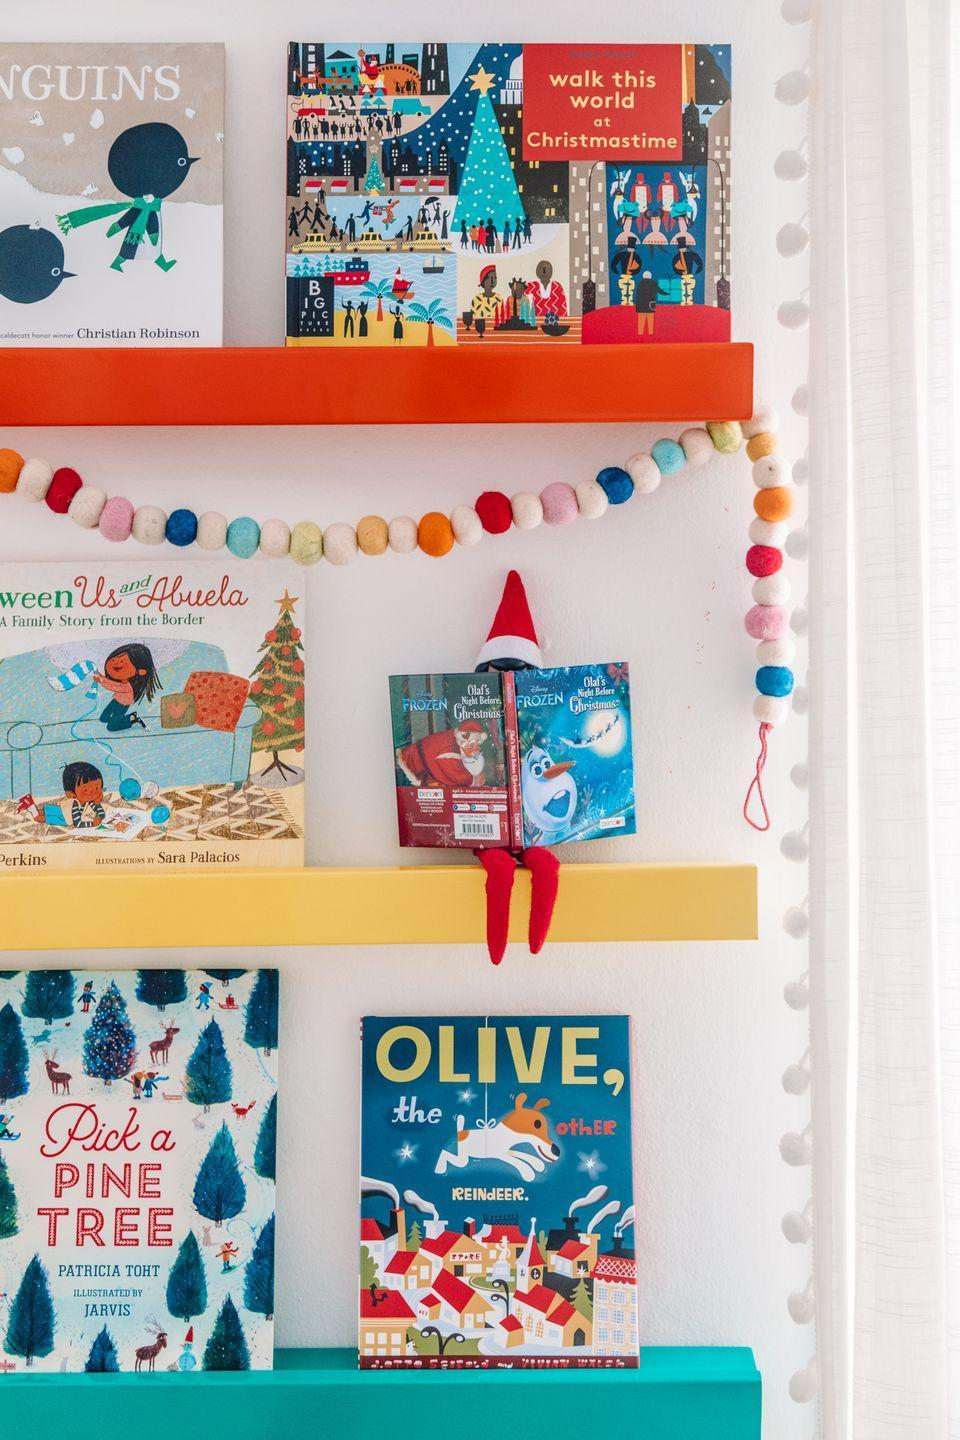 """<p>It's called """"Elf on the Shelf"""" for a reason, you know! Here, your Elf takes a seat behind a children's book and settles in for a good old-fashioned reading session.</p><p><strong>Get the tutorial at <a href=""""https://studiodiy.com/our-2019-holiday-home-tour/"""" rel=""""nofollow noopener"""" target=""""_blank"""" data-ylk=""""slk:Studio DIY"""" class=""""link rapid-noclick-resp"""">Studio DIY</a>.</strong></p><p><strong><a class=""""link rapid-noclick-resp"""" href=""""https://go.redirectingat.com?id=74968X1596630&url=https%3A%2F%2Fwww.walmart.com%2Fip%2FLittle-Ree-Little-Ree-Hardcover-9780062453181%2F55134289&sref=https%3A%2F%2Fwww.thepioneerwoman.com%2Fholidays-celebrations%2Fg34080491%2Ffunny-elf-on-the-shelf-ideas%2F"""" rel=""""nofollow noopener"""" target=""""_blank"""" data-ylk=""""slk:SHOP LITTLE REE BOOKS"""">SHOP LITTLE REE BOOKS</a><br></strong></p>"""